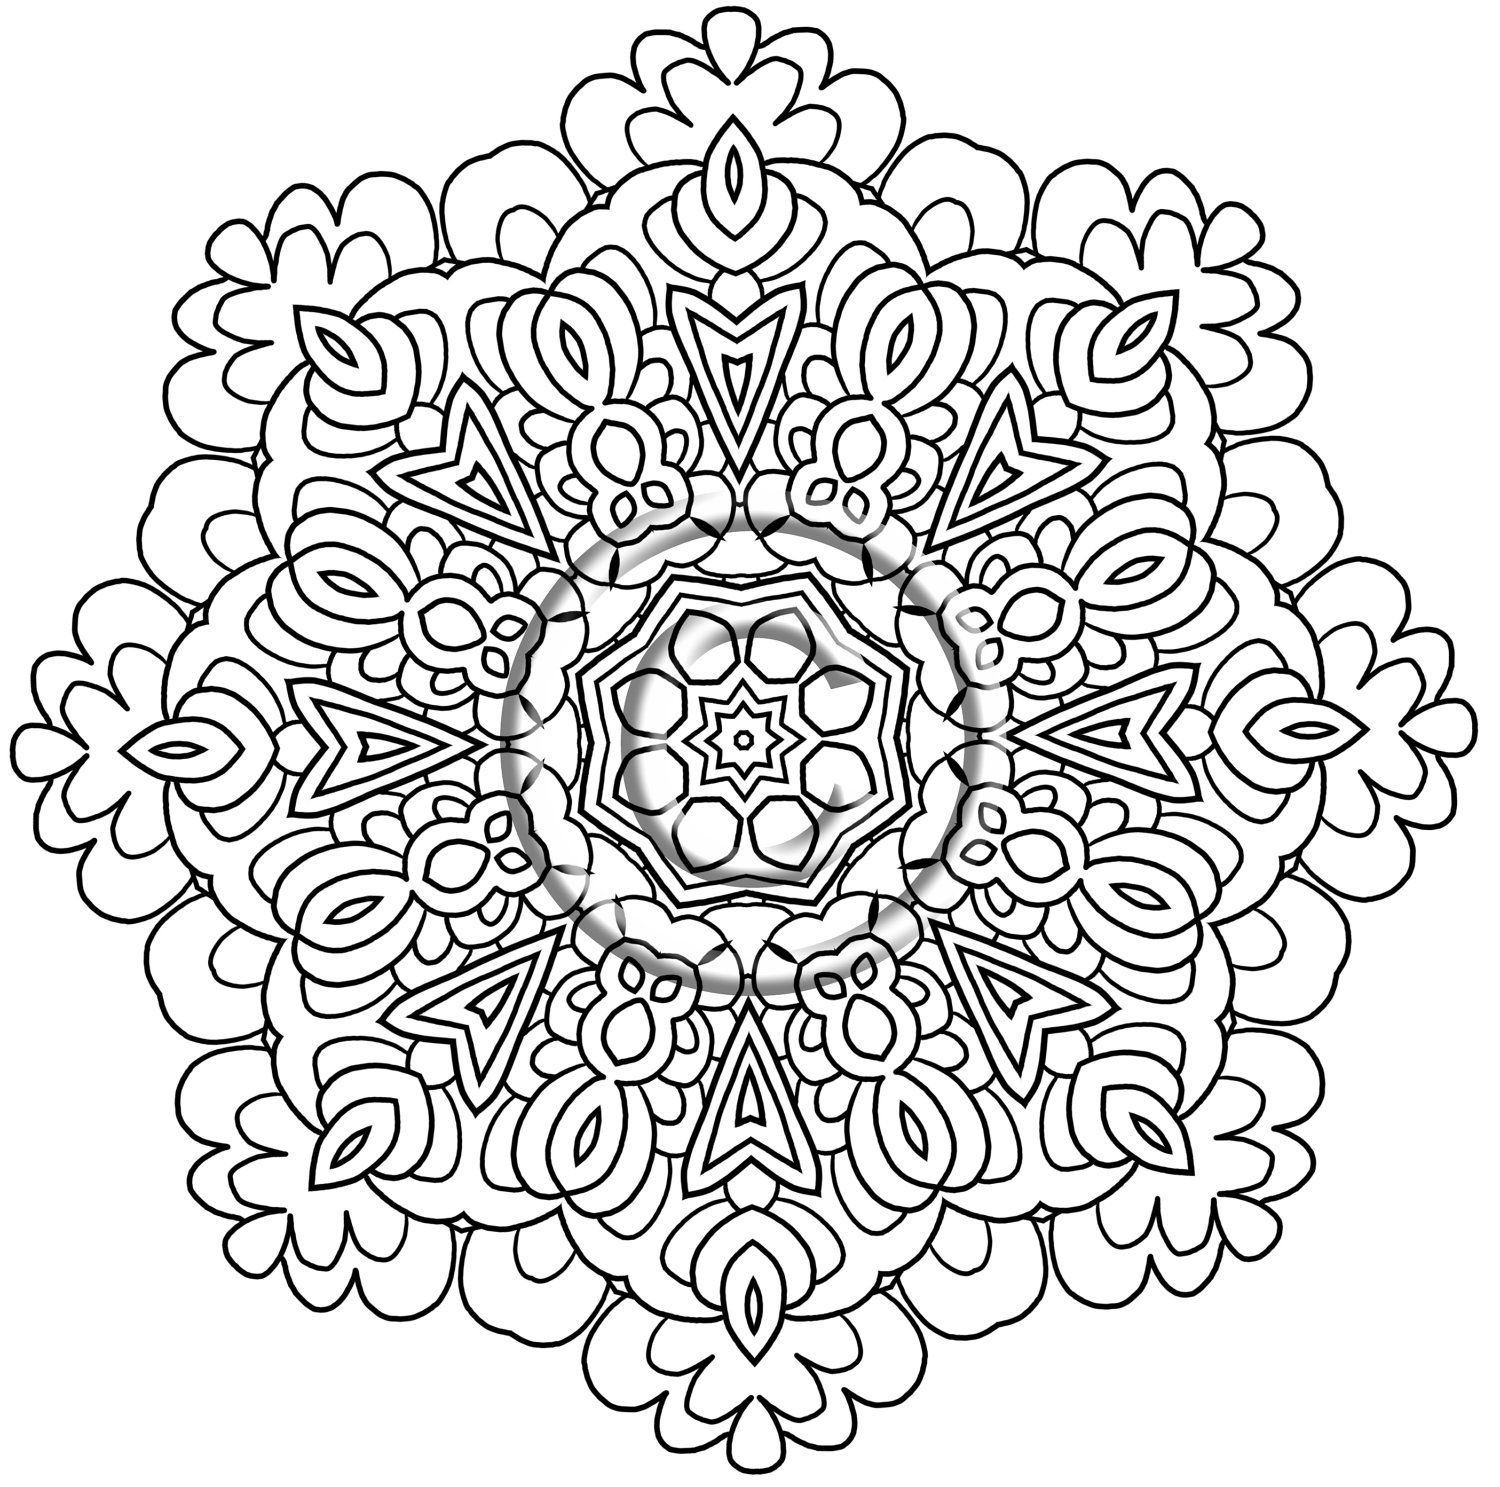 coloring pages intricate patterns illustrator - photo#19